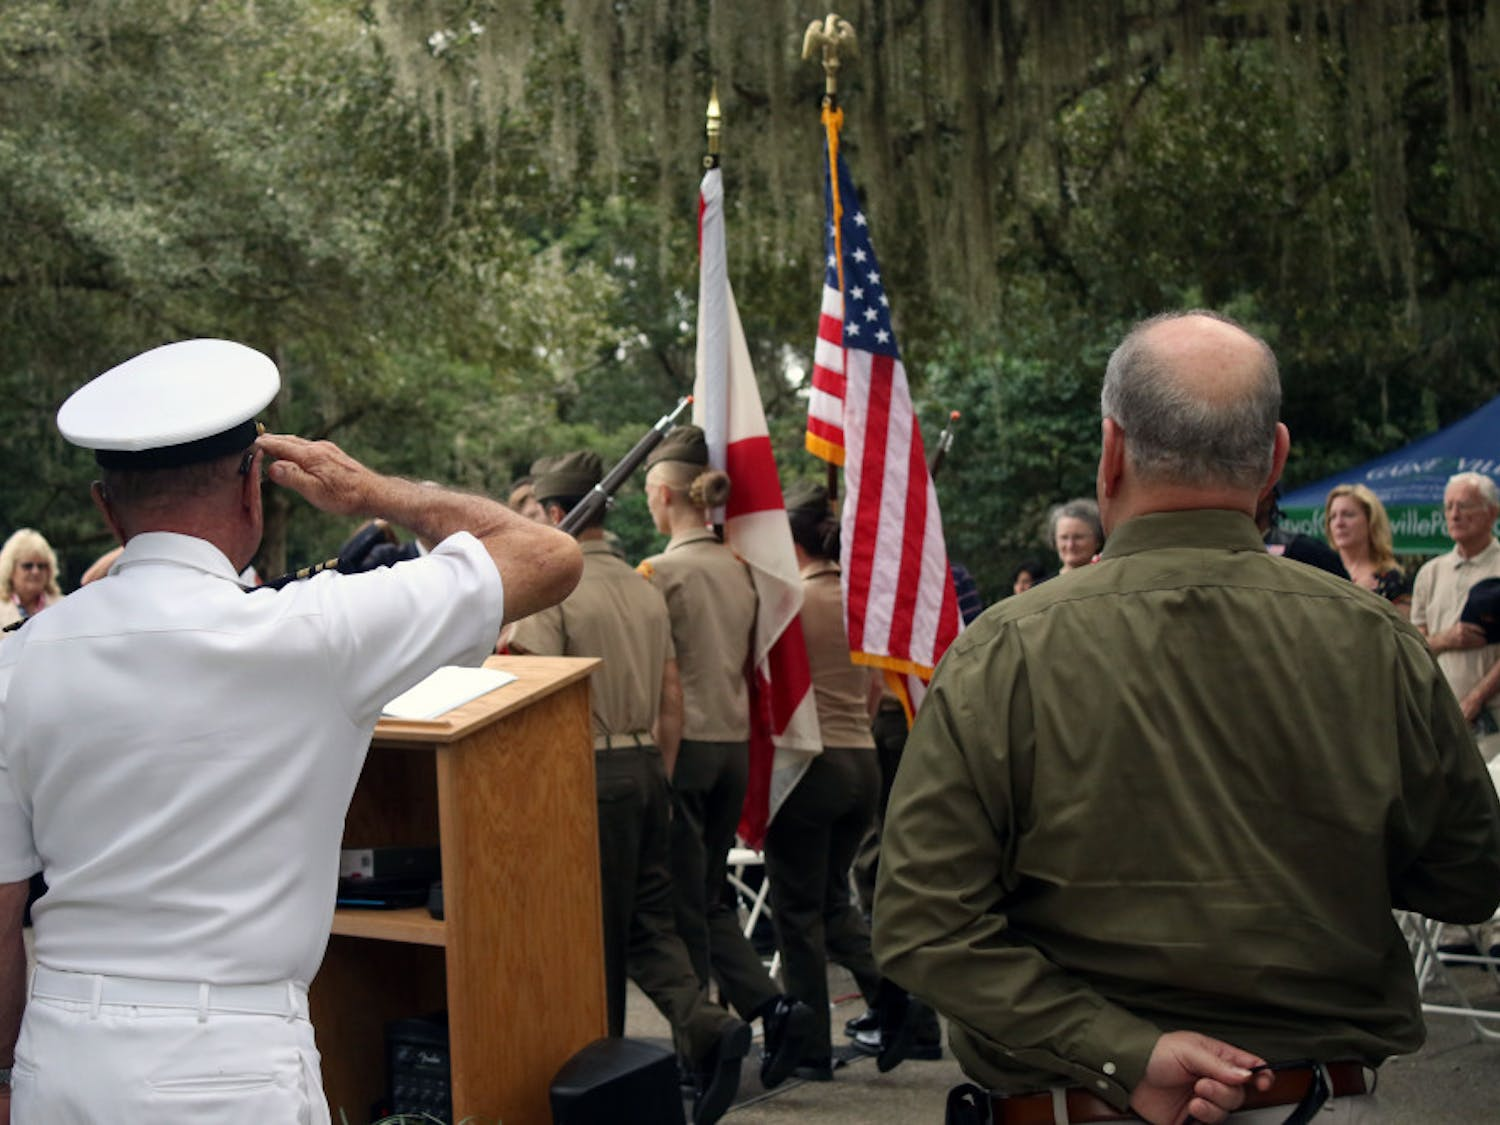 Retired Lt. Commander Gary Cook (L) salutes the flag as the Milton Lewis Young Marines present the colors at a Veterans Day event at Evergreen Cemetery in Gainesville on Monday, Nov. 12, 2018. The event was held to honor the veterans buried in the cemetery and to commemorate the 100th anniversary of the end of World War One.